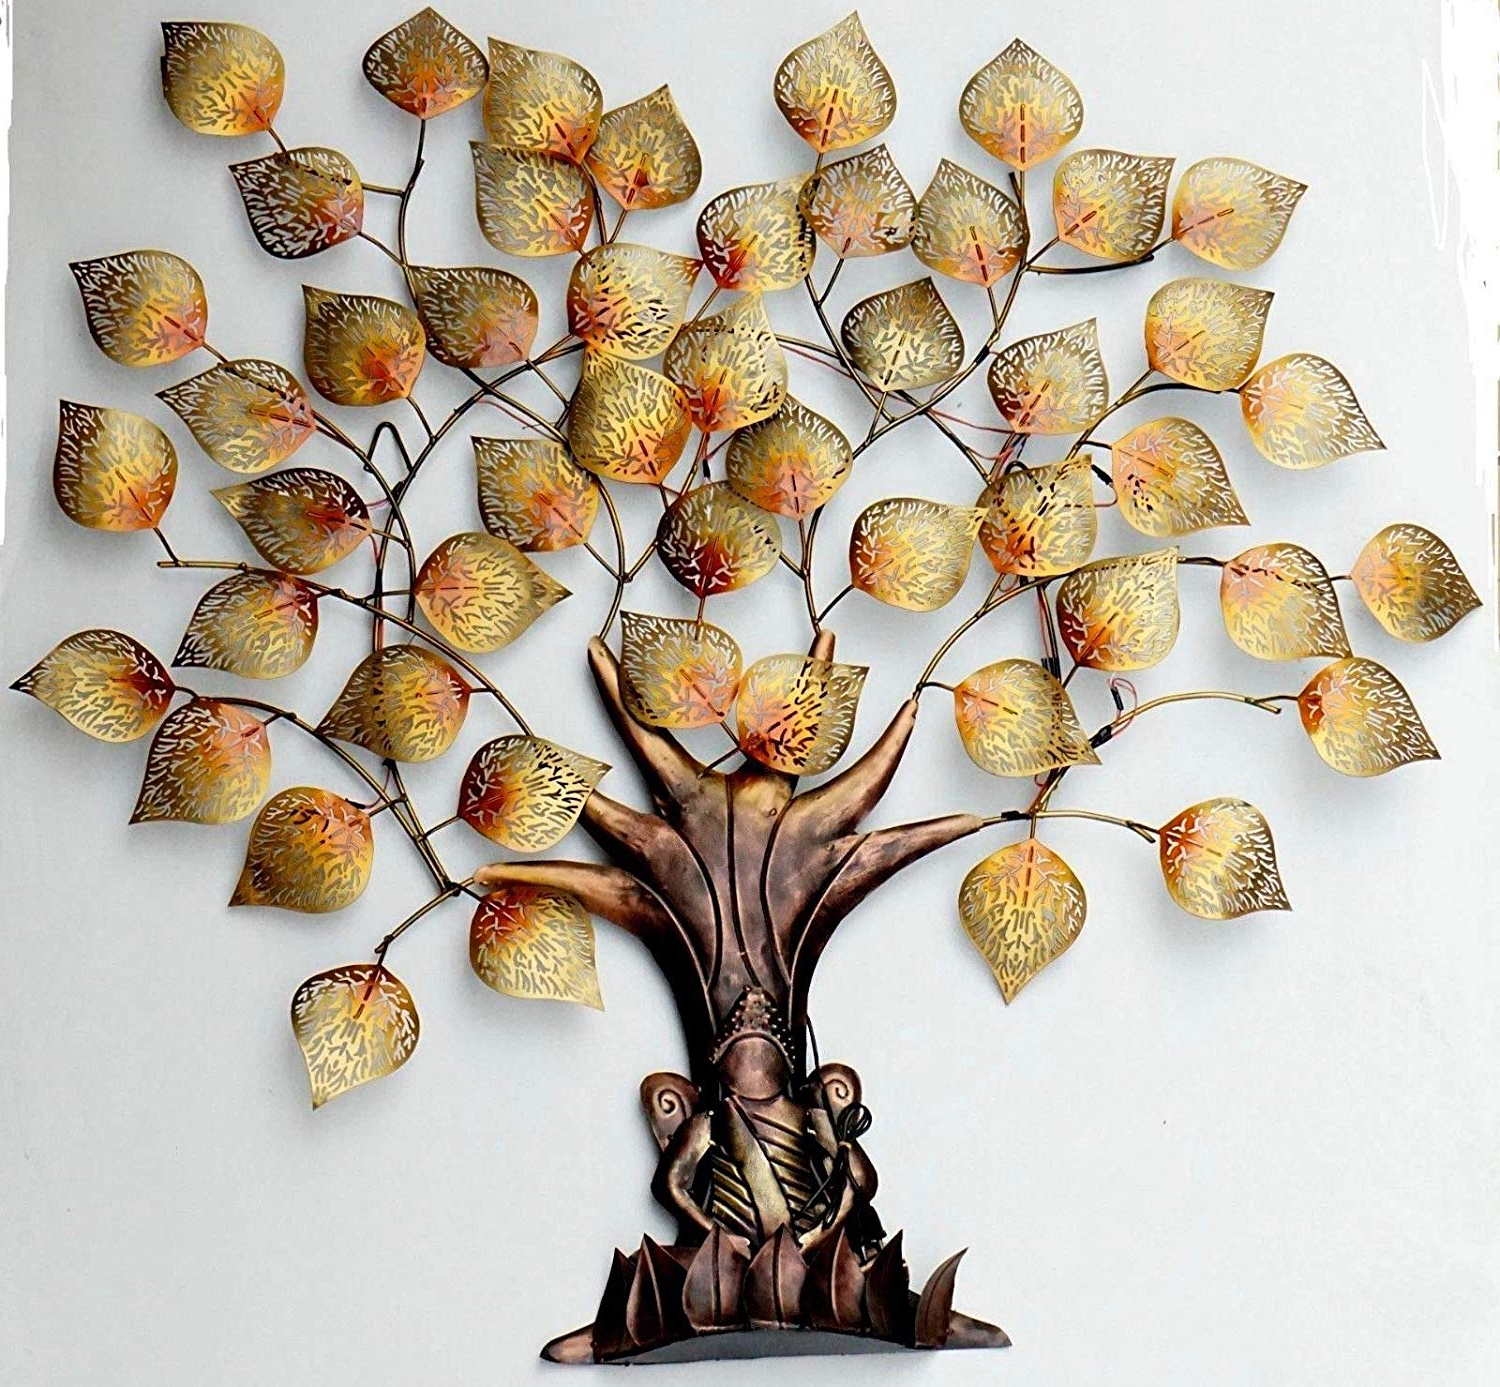 Tree Shell Leaves Sculpture Wall Decor Pertaining To 2019 Buy Elegant Wall Hanging/wall Decor Handmade Metal Art Tree Of (View 10 of 20)